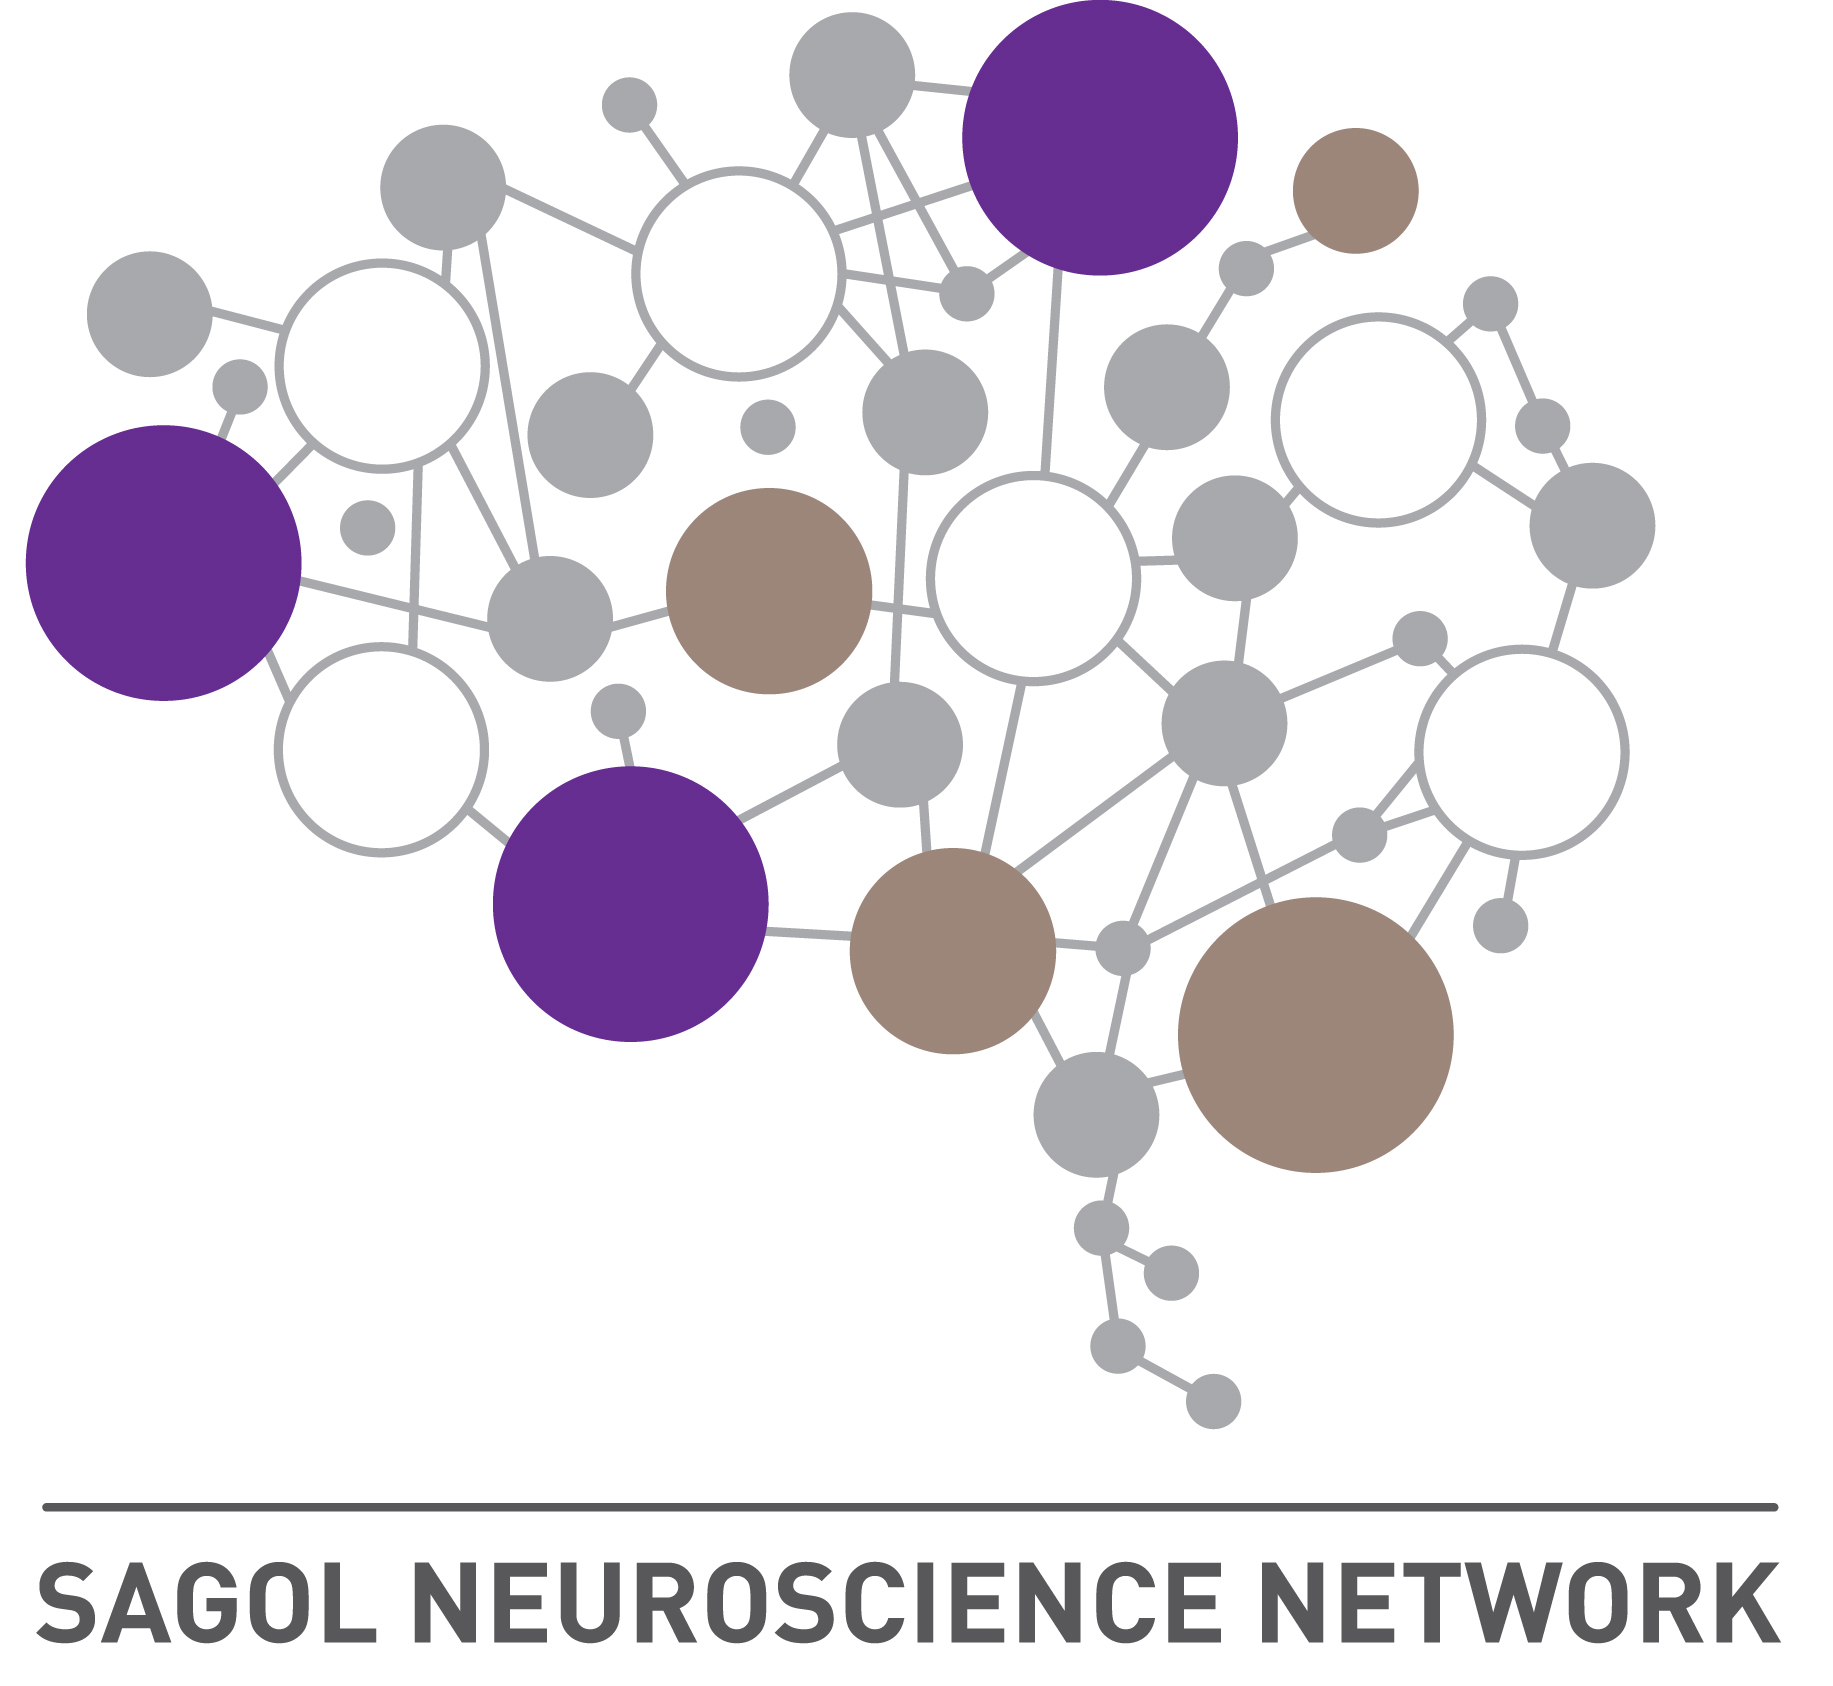 Sagol Neuroscience Network